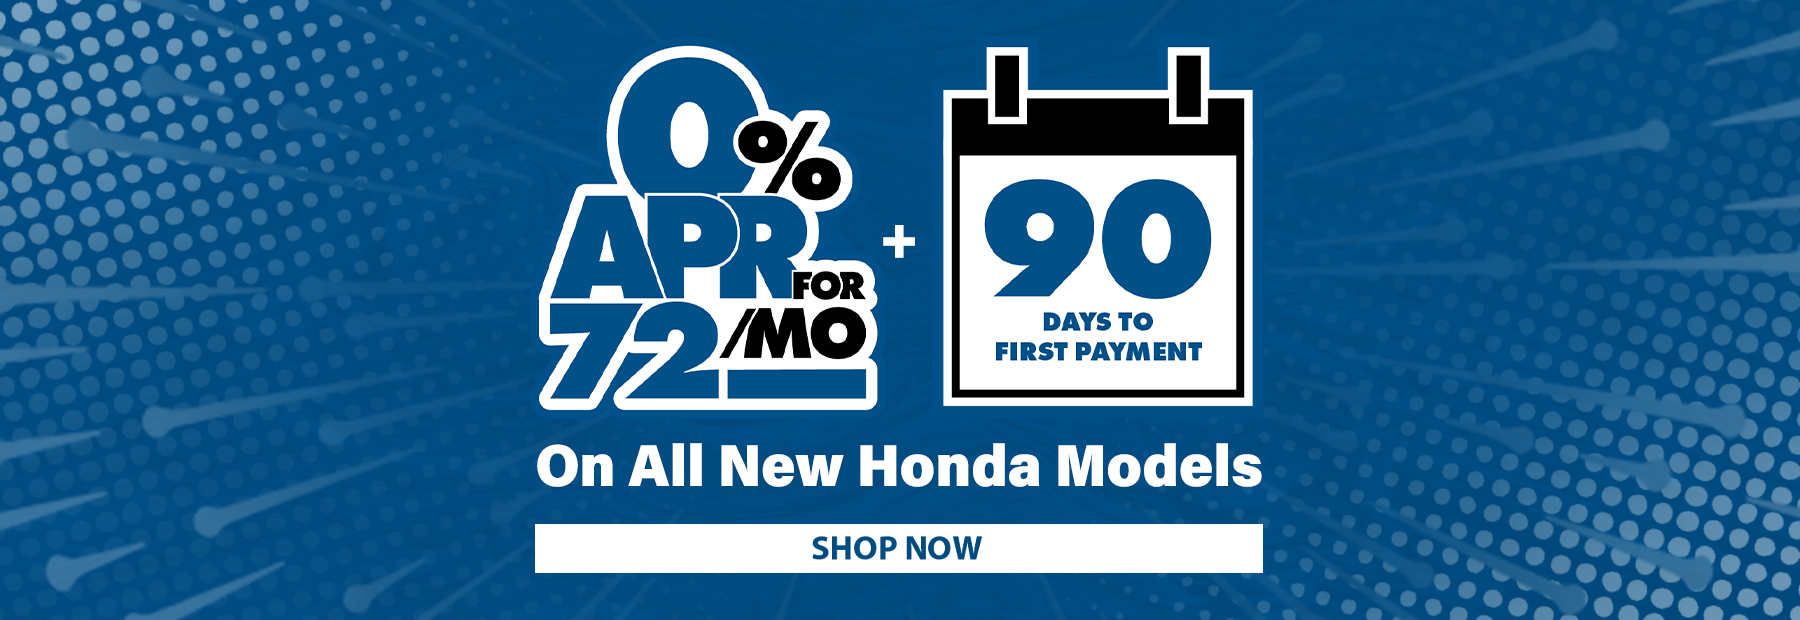 zero-percent-apr-72-months-no-payments-for-90-days